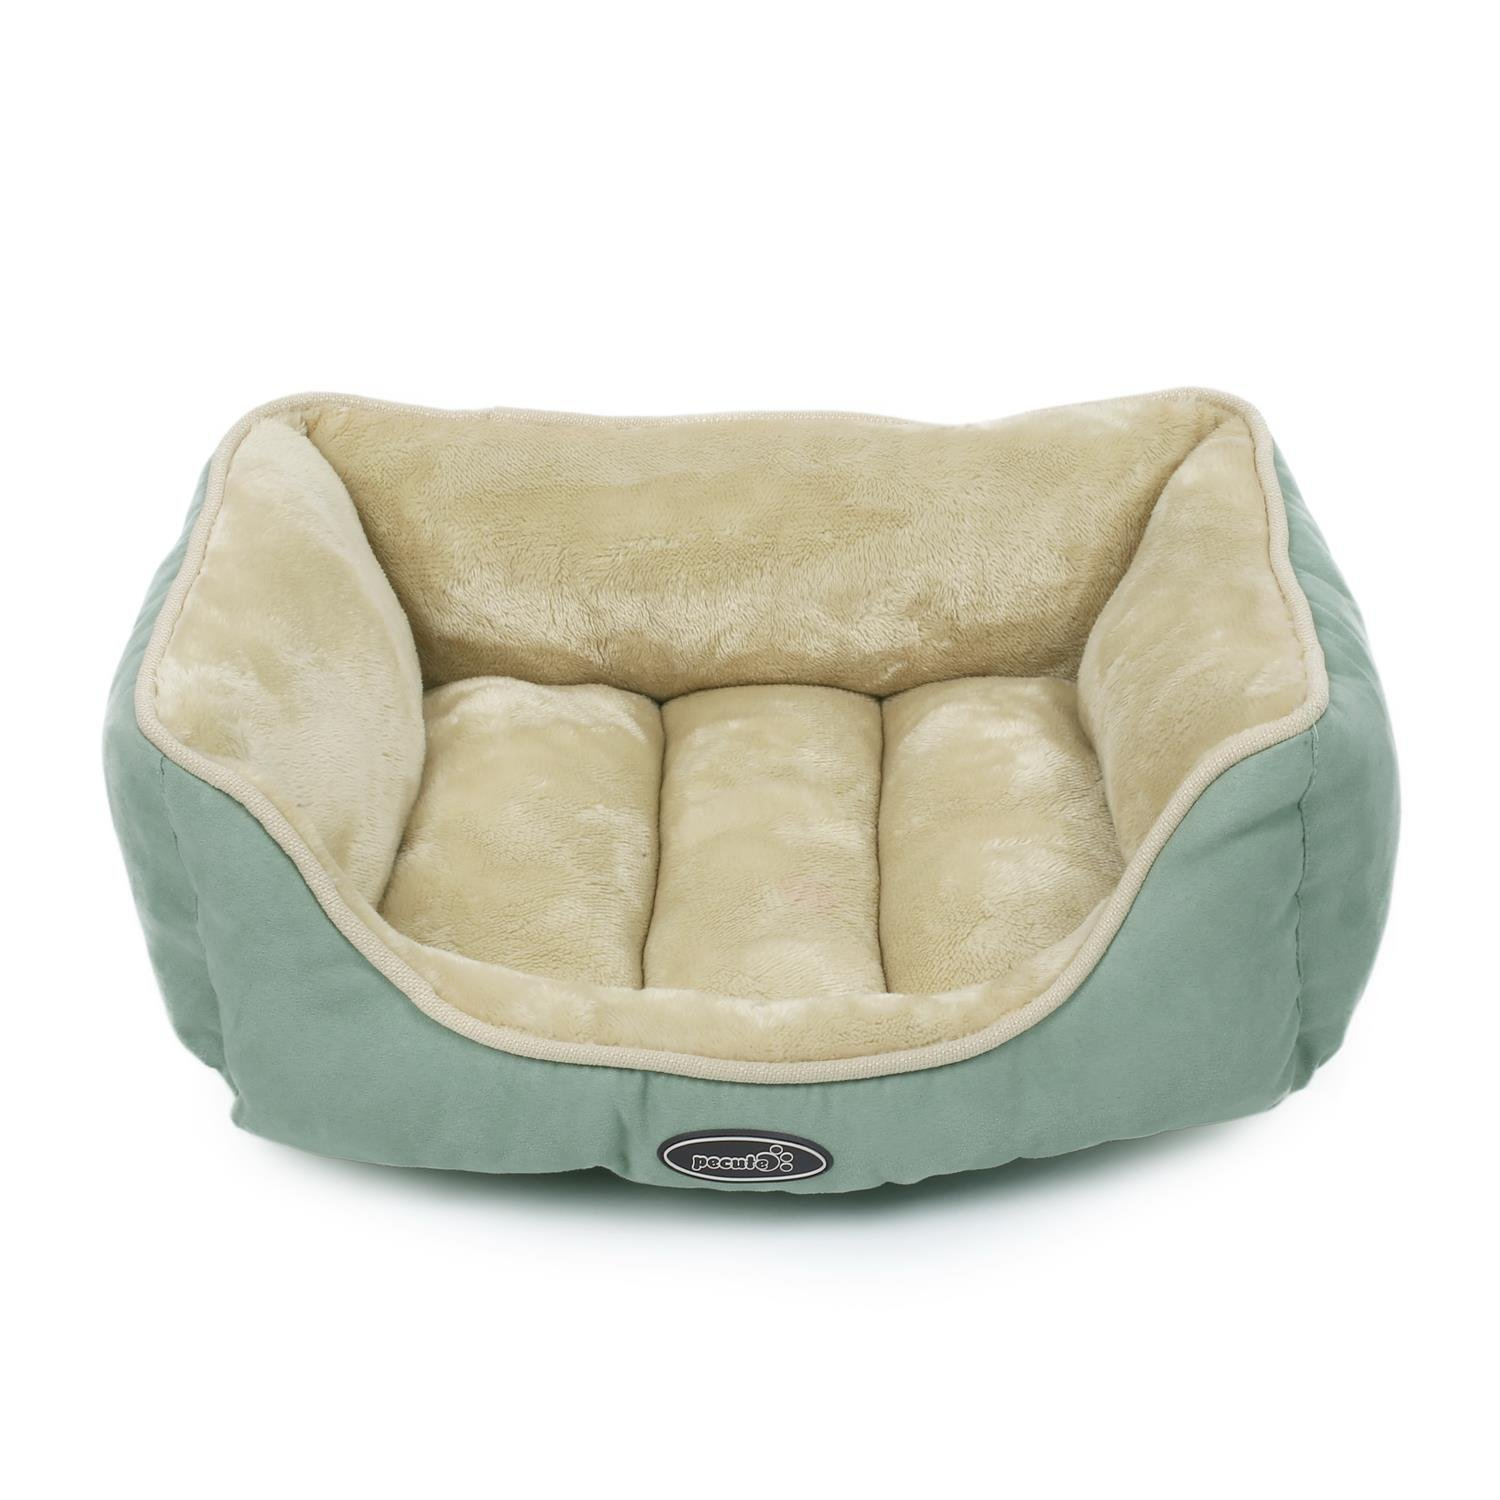 Pecute Deluxe Pet Bed for Cats and Small Dogs Rectangle Cuddler Ultra-Soft Plush Solid Pet Sleeper Machine Washable Green and Beige (Small(18.9\